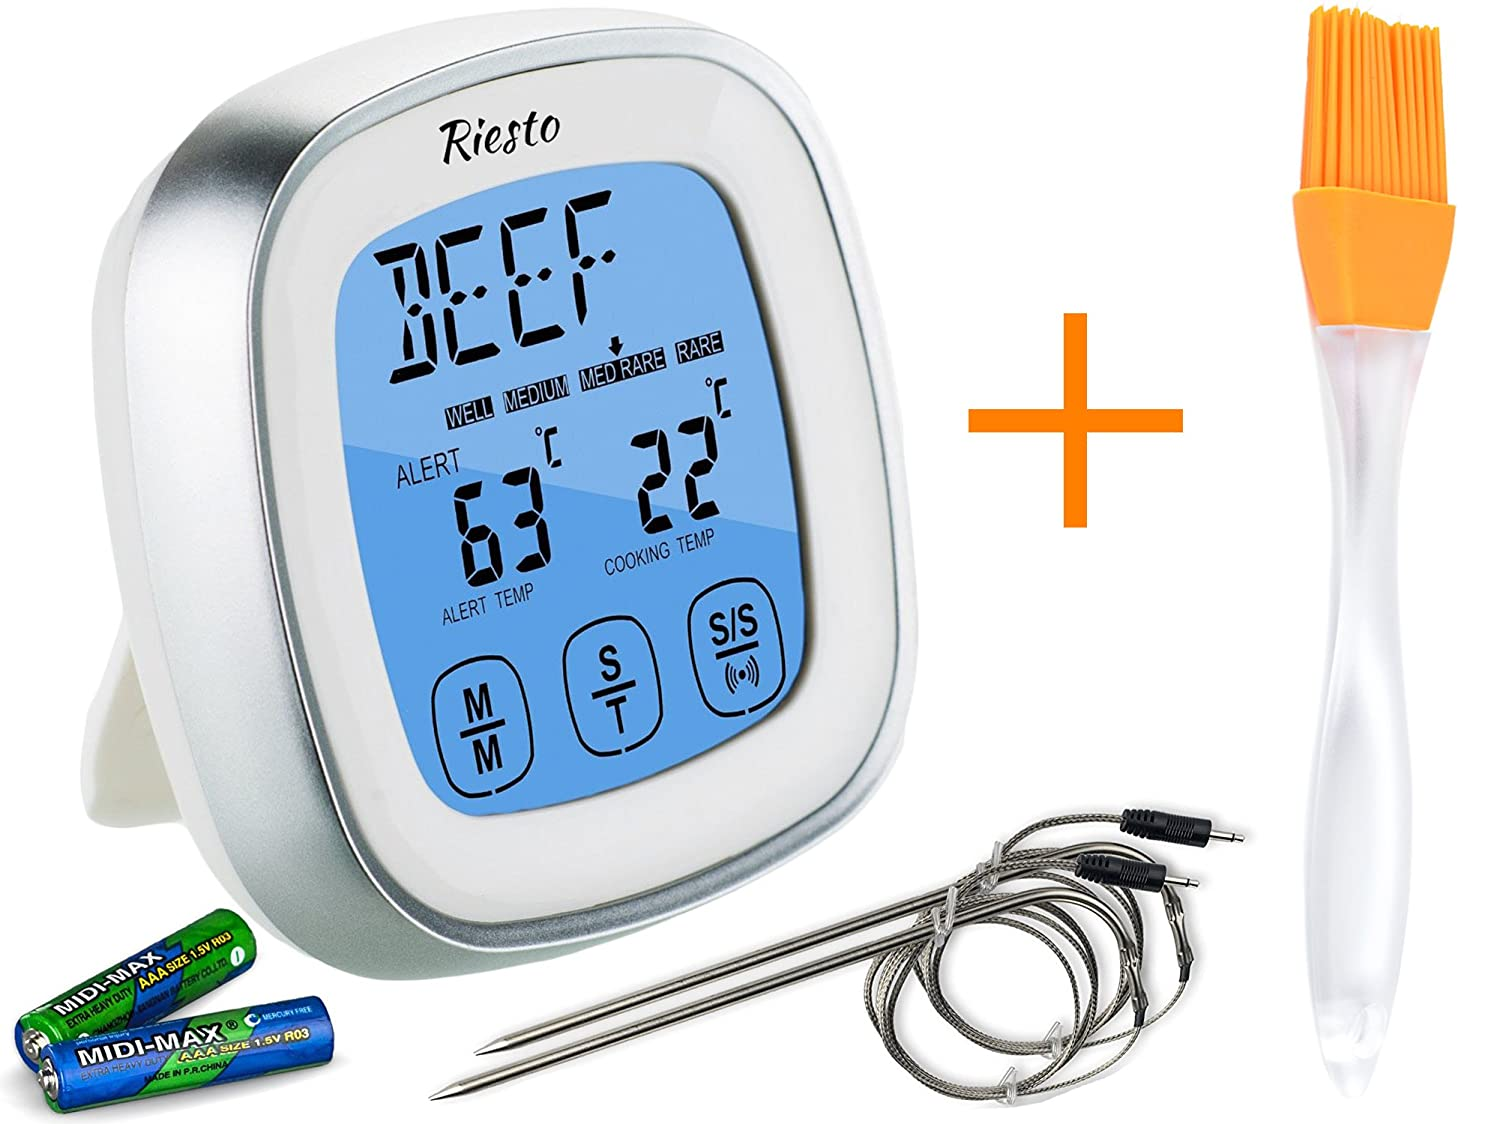 Amazon.com: Riesto Digital Meat Thermometer For Grill - Oven Smoker ...